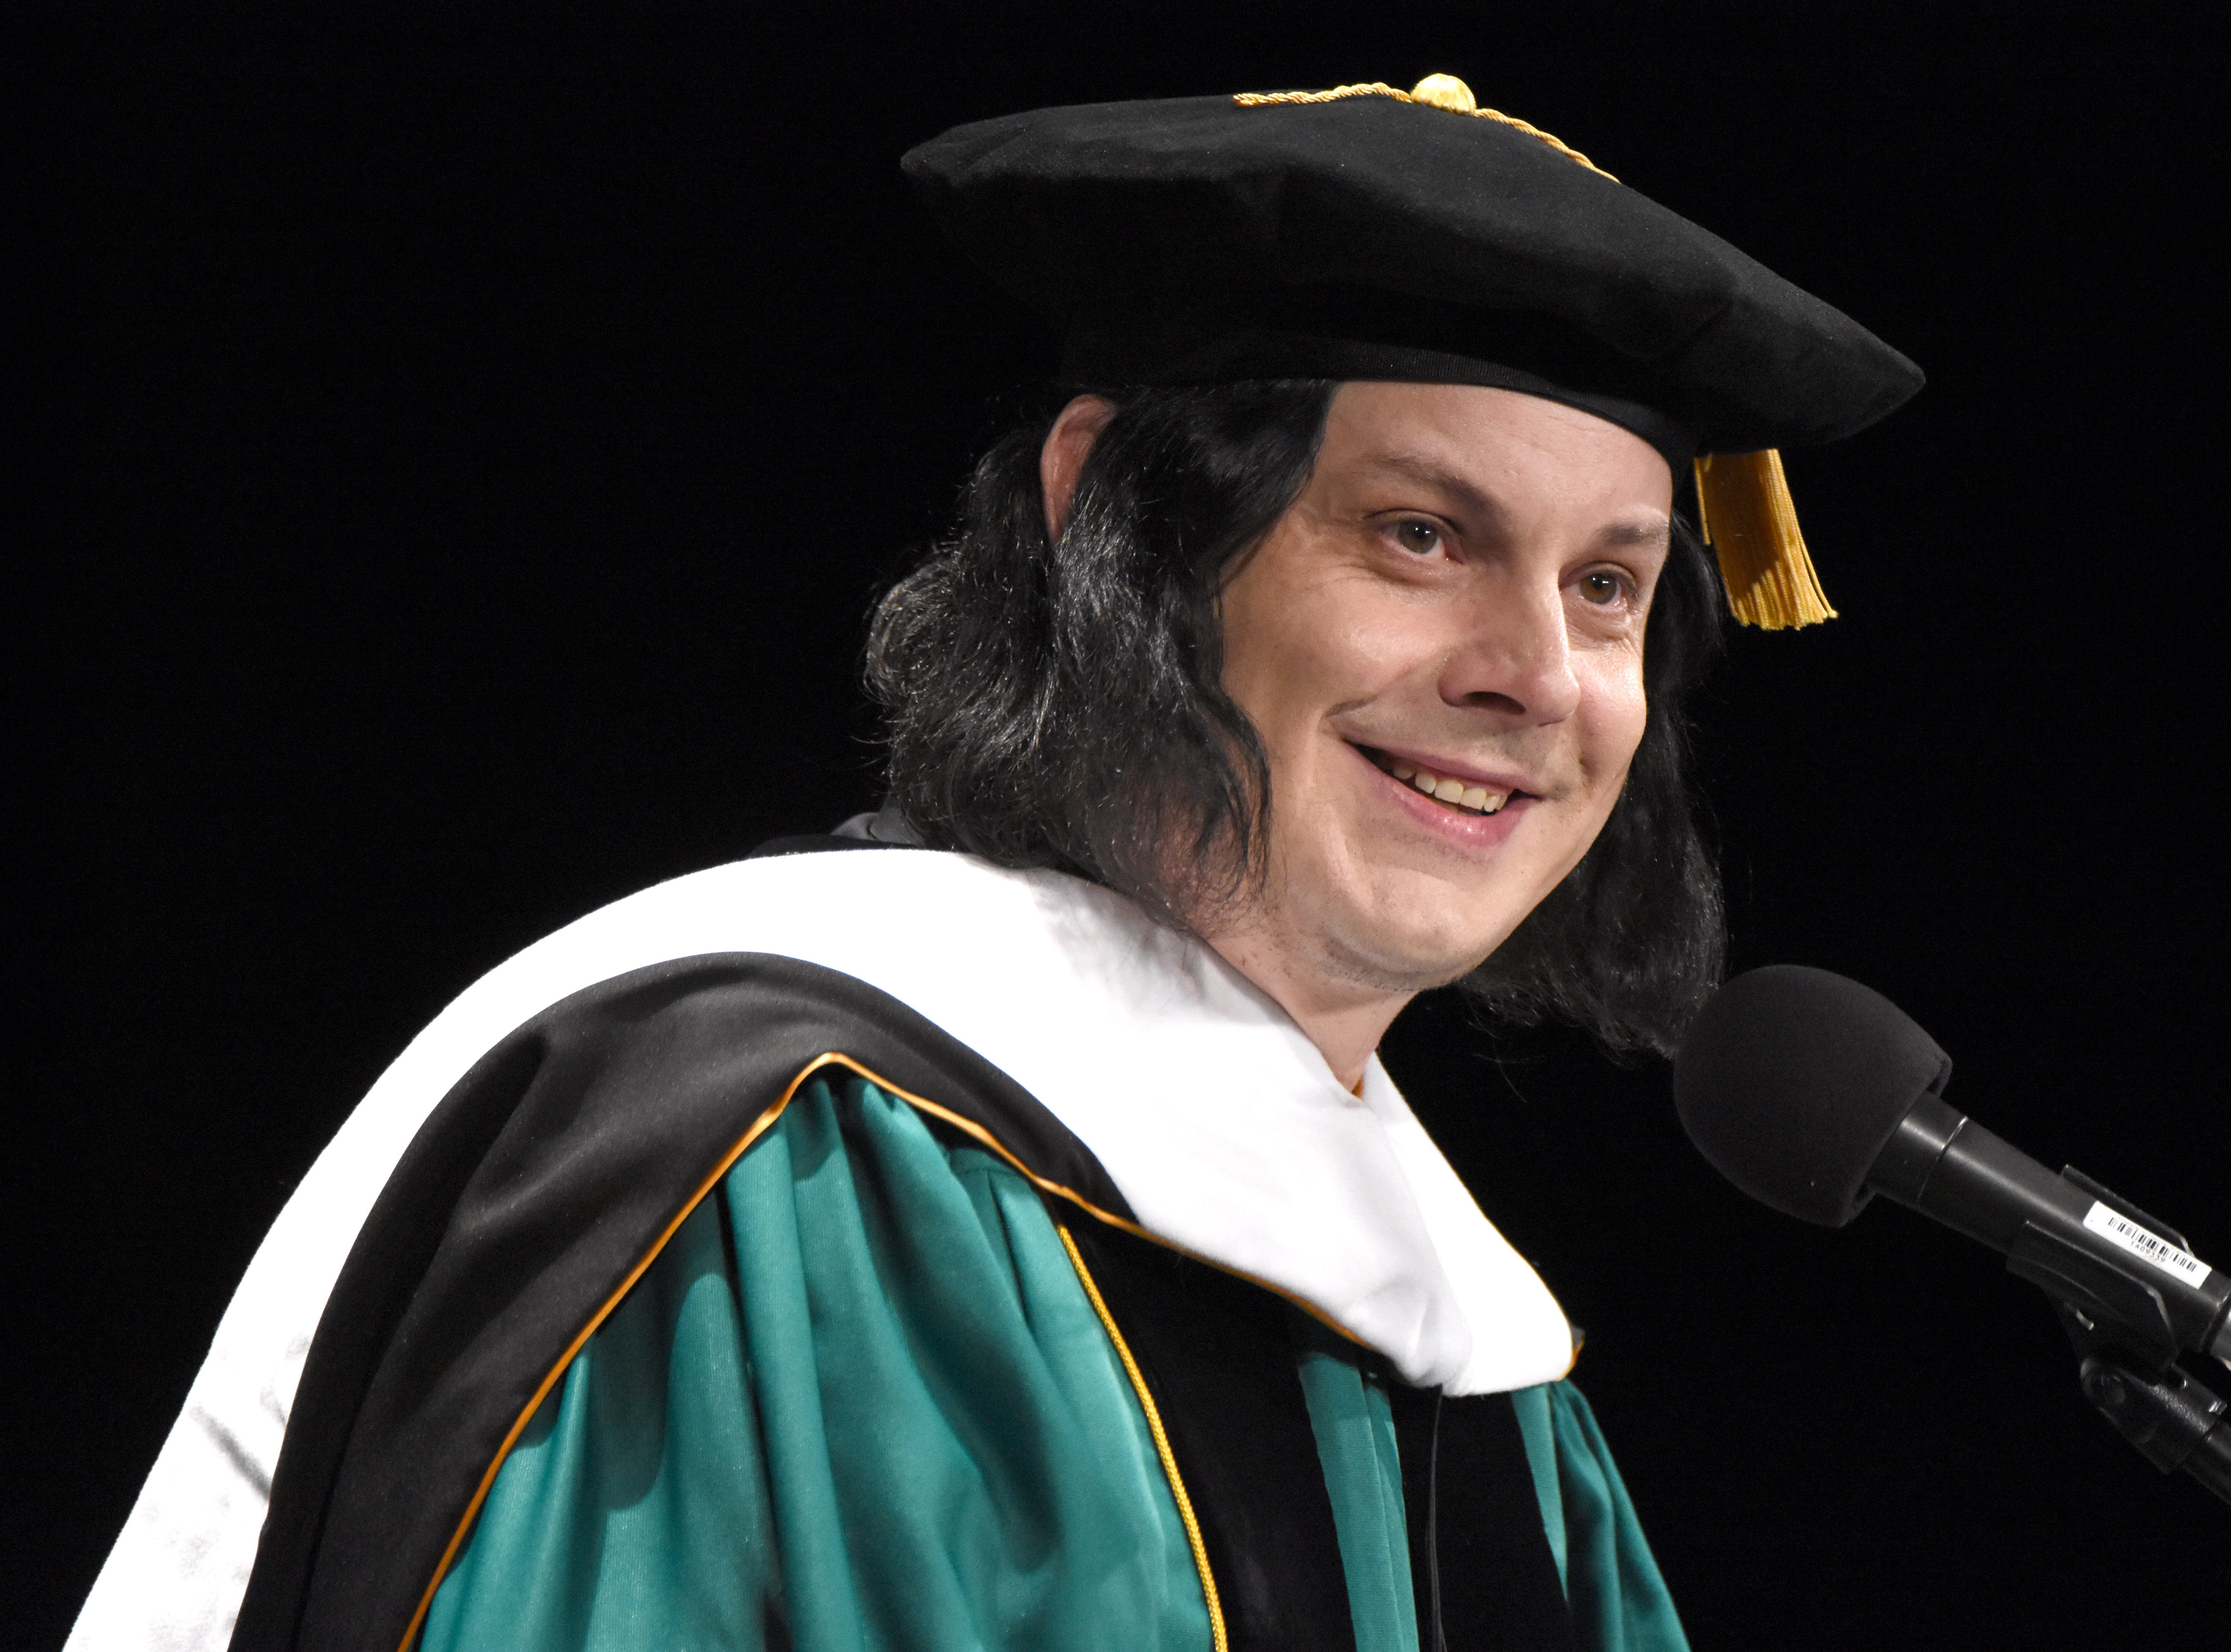 Musician Jack White speaks to graduates after receiving an honorary degree during the Wayne State University commencement exercises at the Fox Theatre on Friday, May 3, 2019